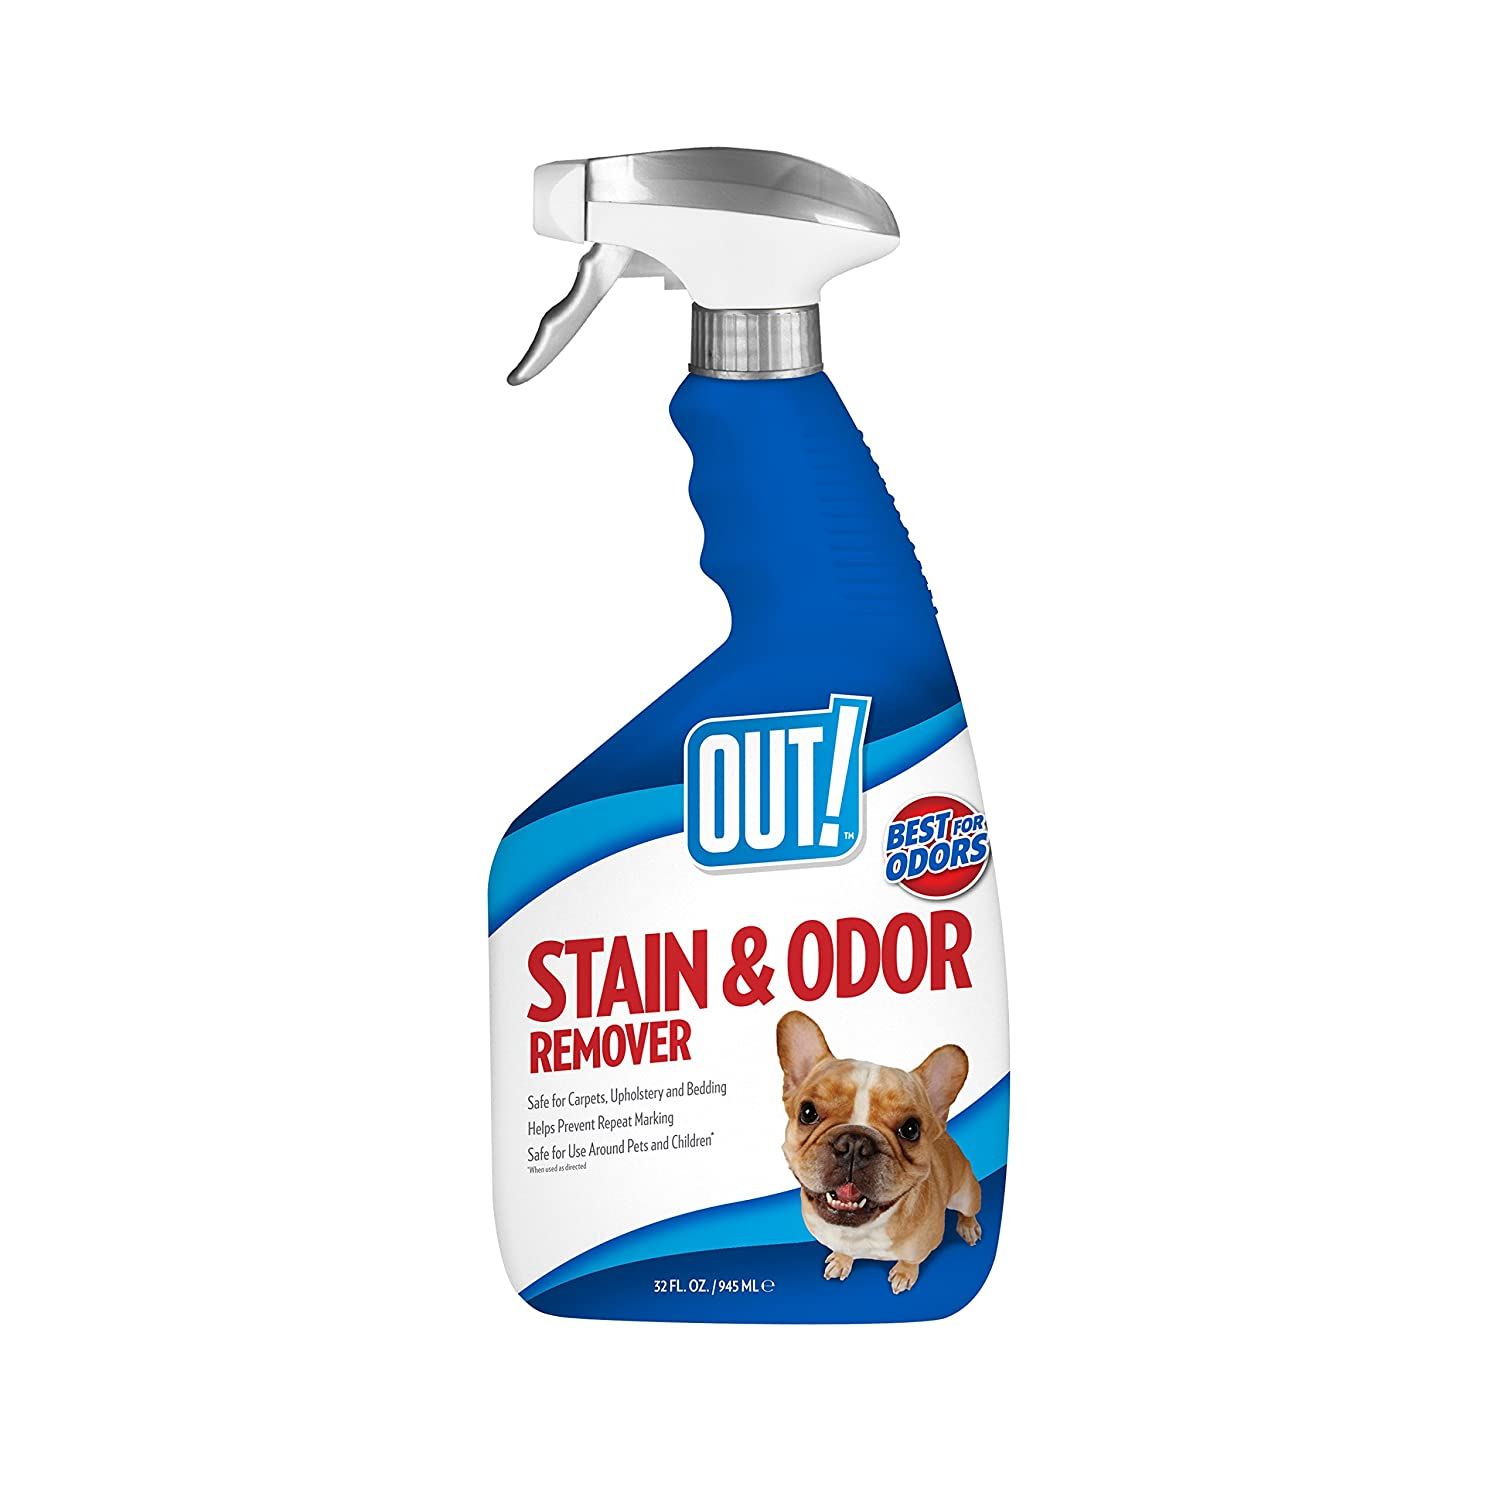 Your carpet and upholstery problem will be a thing of the past with OUT! Pet Stain and Odor Remover. This cleaner is no ordinary one since it has a Natural ...